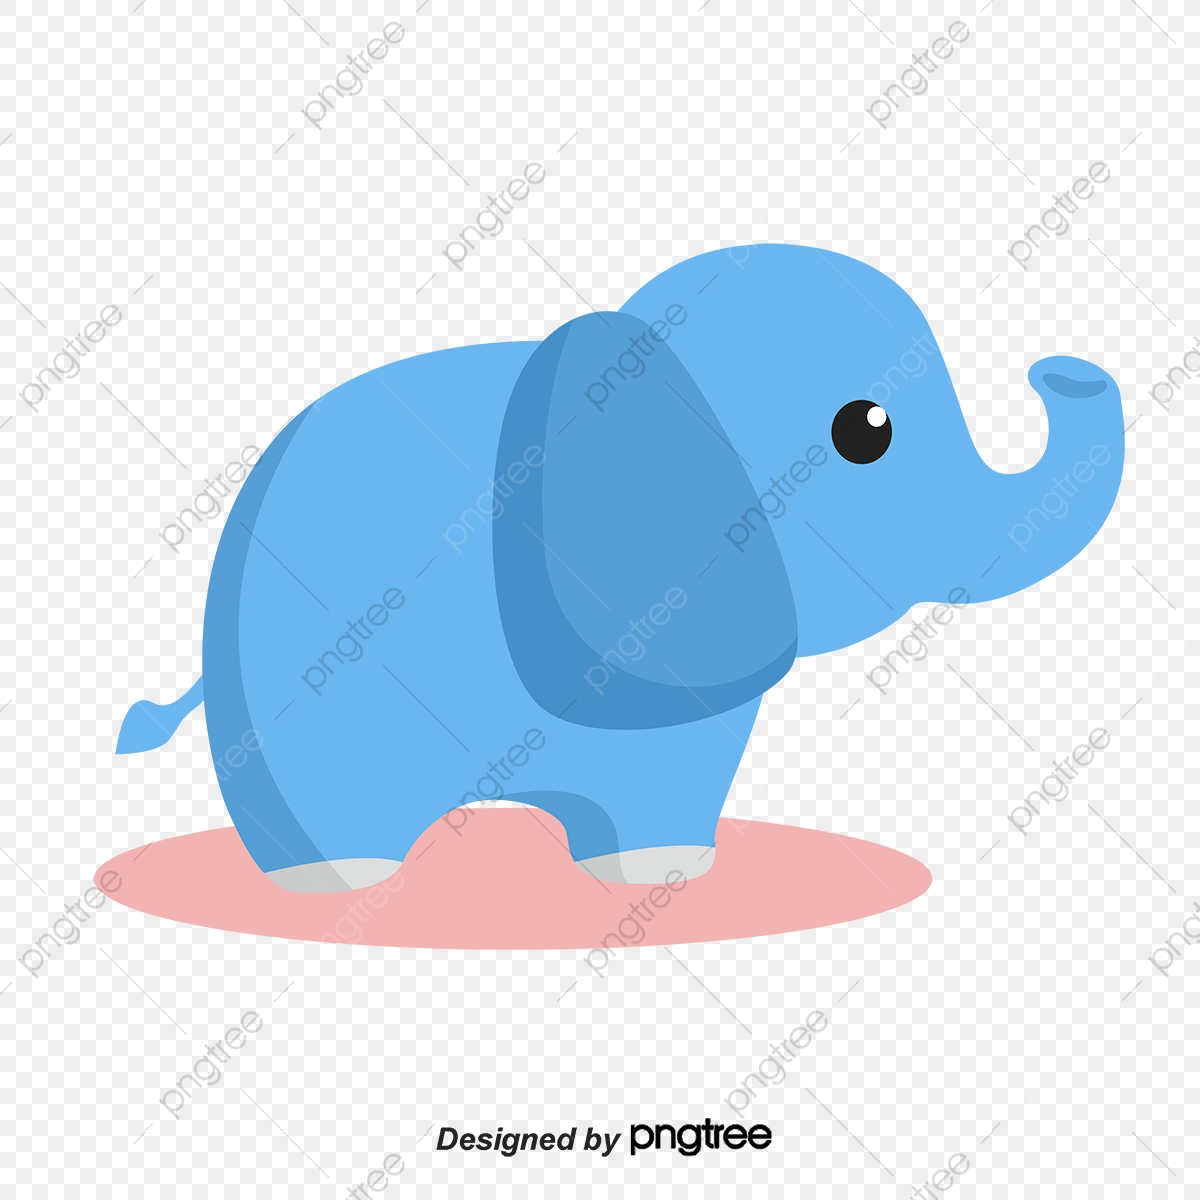 Cartoon Blue Elephant Clip Painting Animal Cartoon Elephant Png And Vector With Transparent Background For Free Download Free icons of elephant in various design styles for web, mobile, and graphic design projects. https pngtree com freepng cartoon blue elephant clip painting 4183042 html